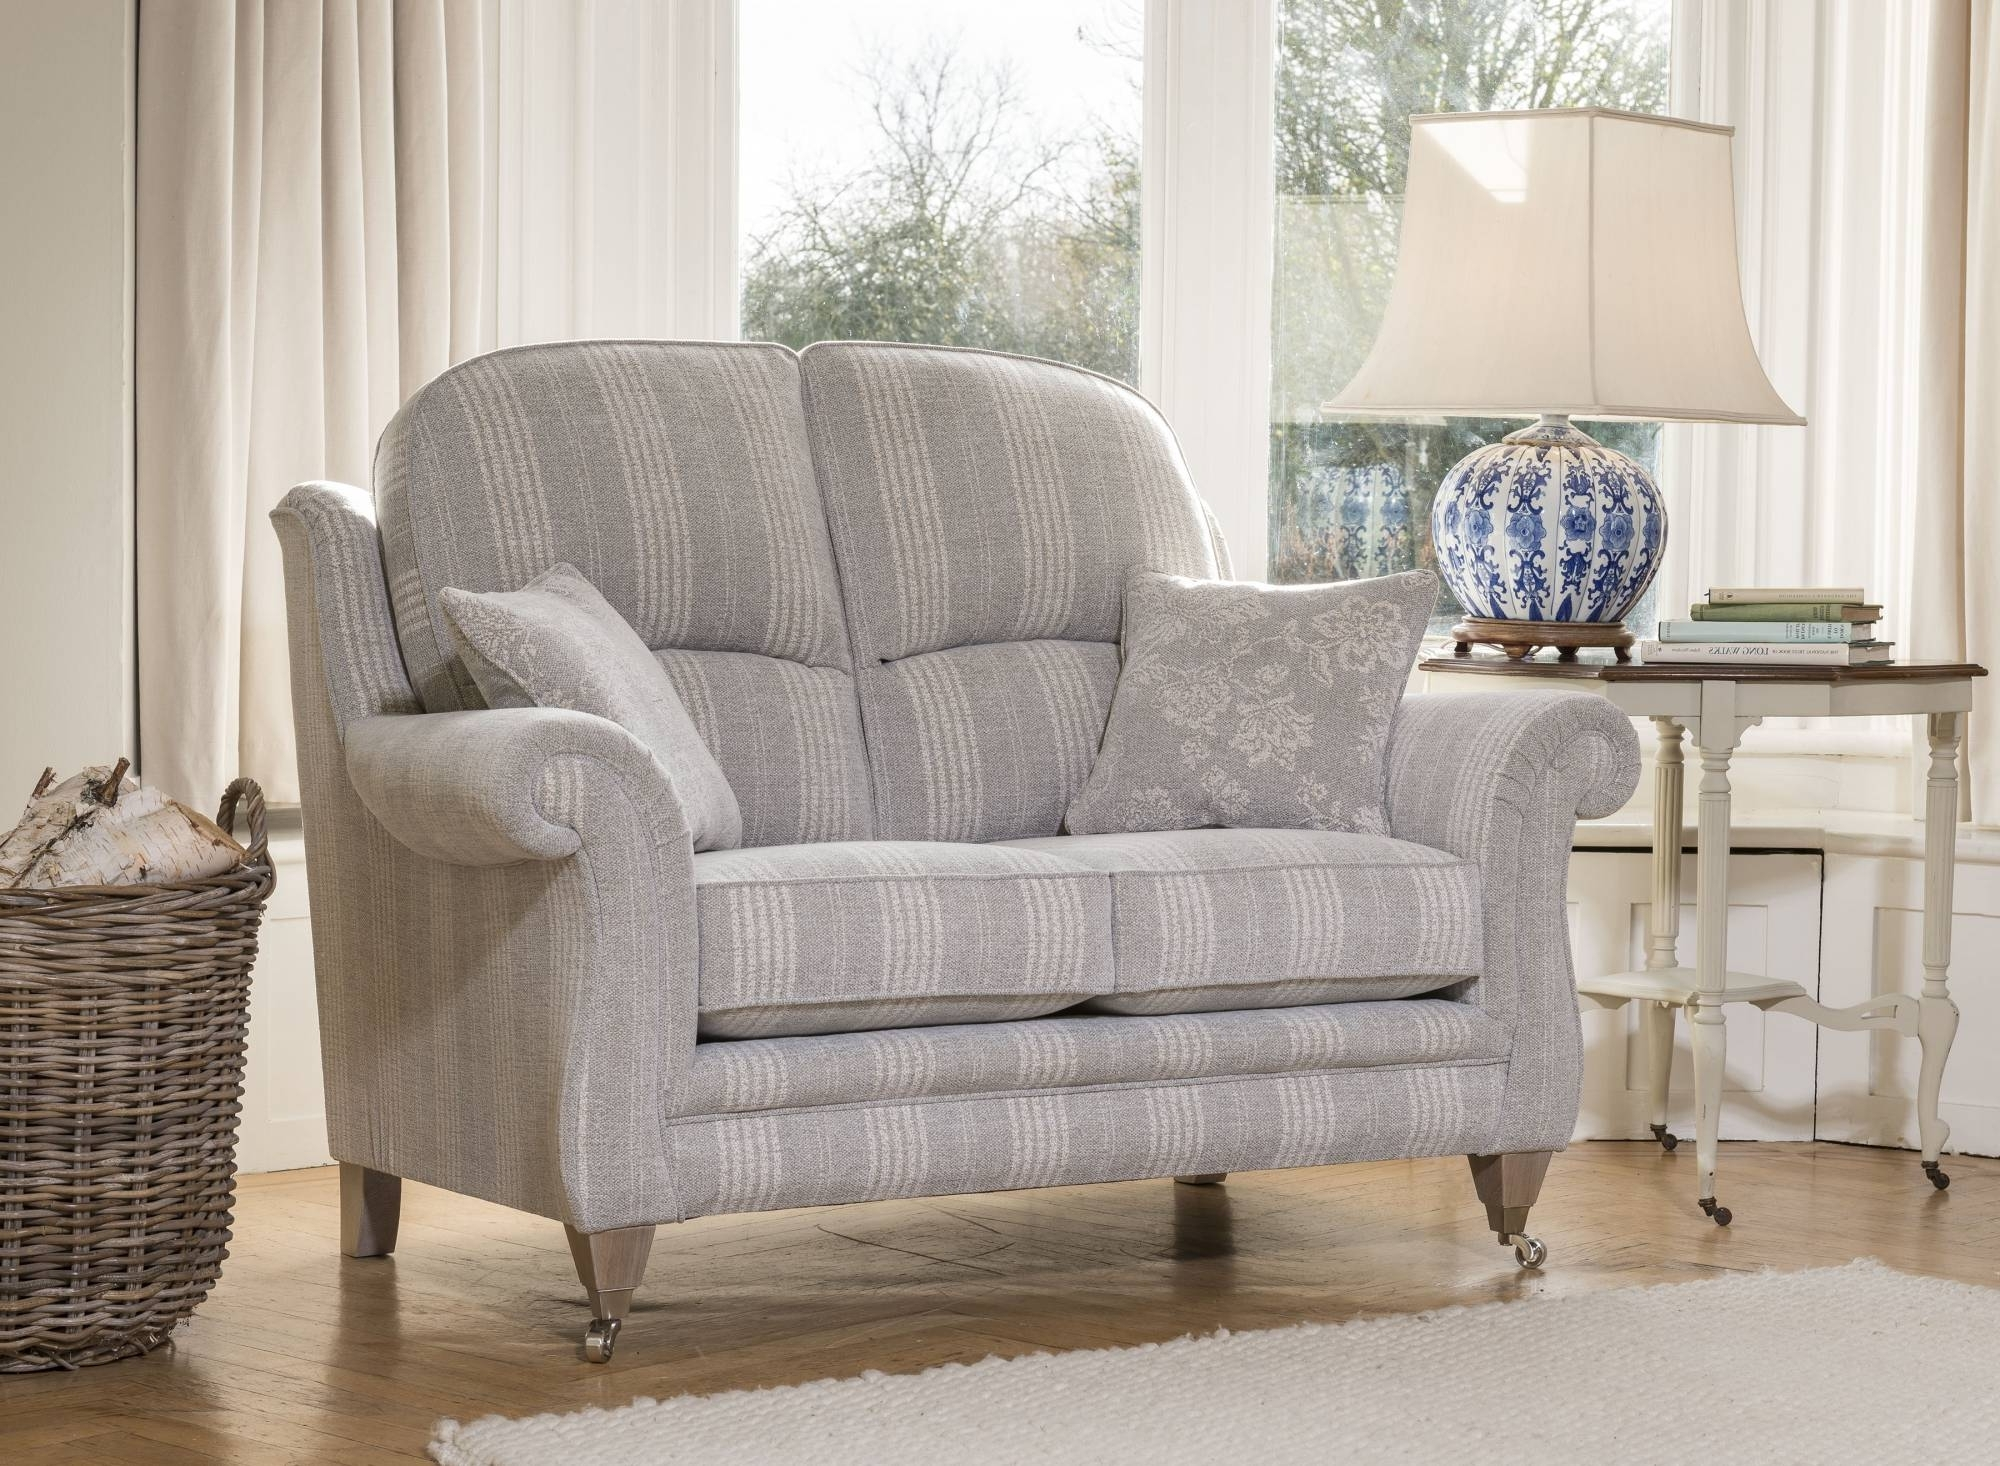 Small 2 Seater Sofas Regarding Well Liked Lovely Small 2 Seater Sofa 11 On Living Room Sofa Ideas With Small (View 16 of 20)